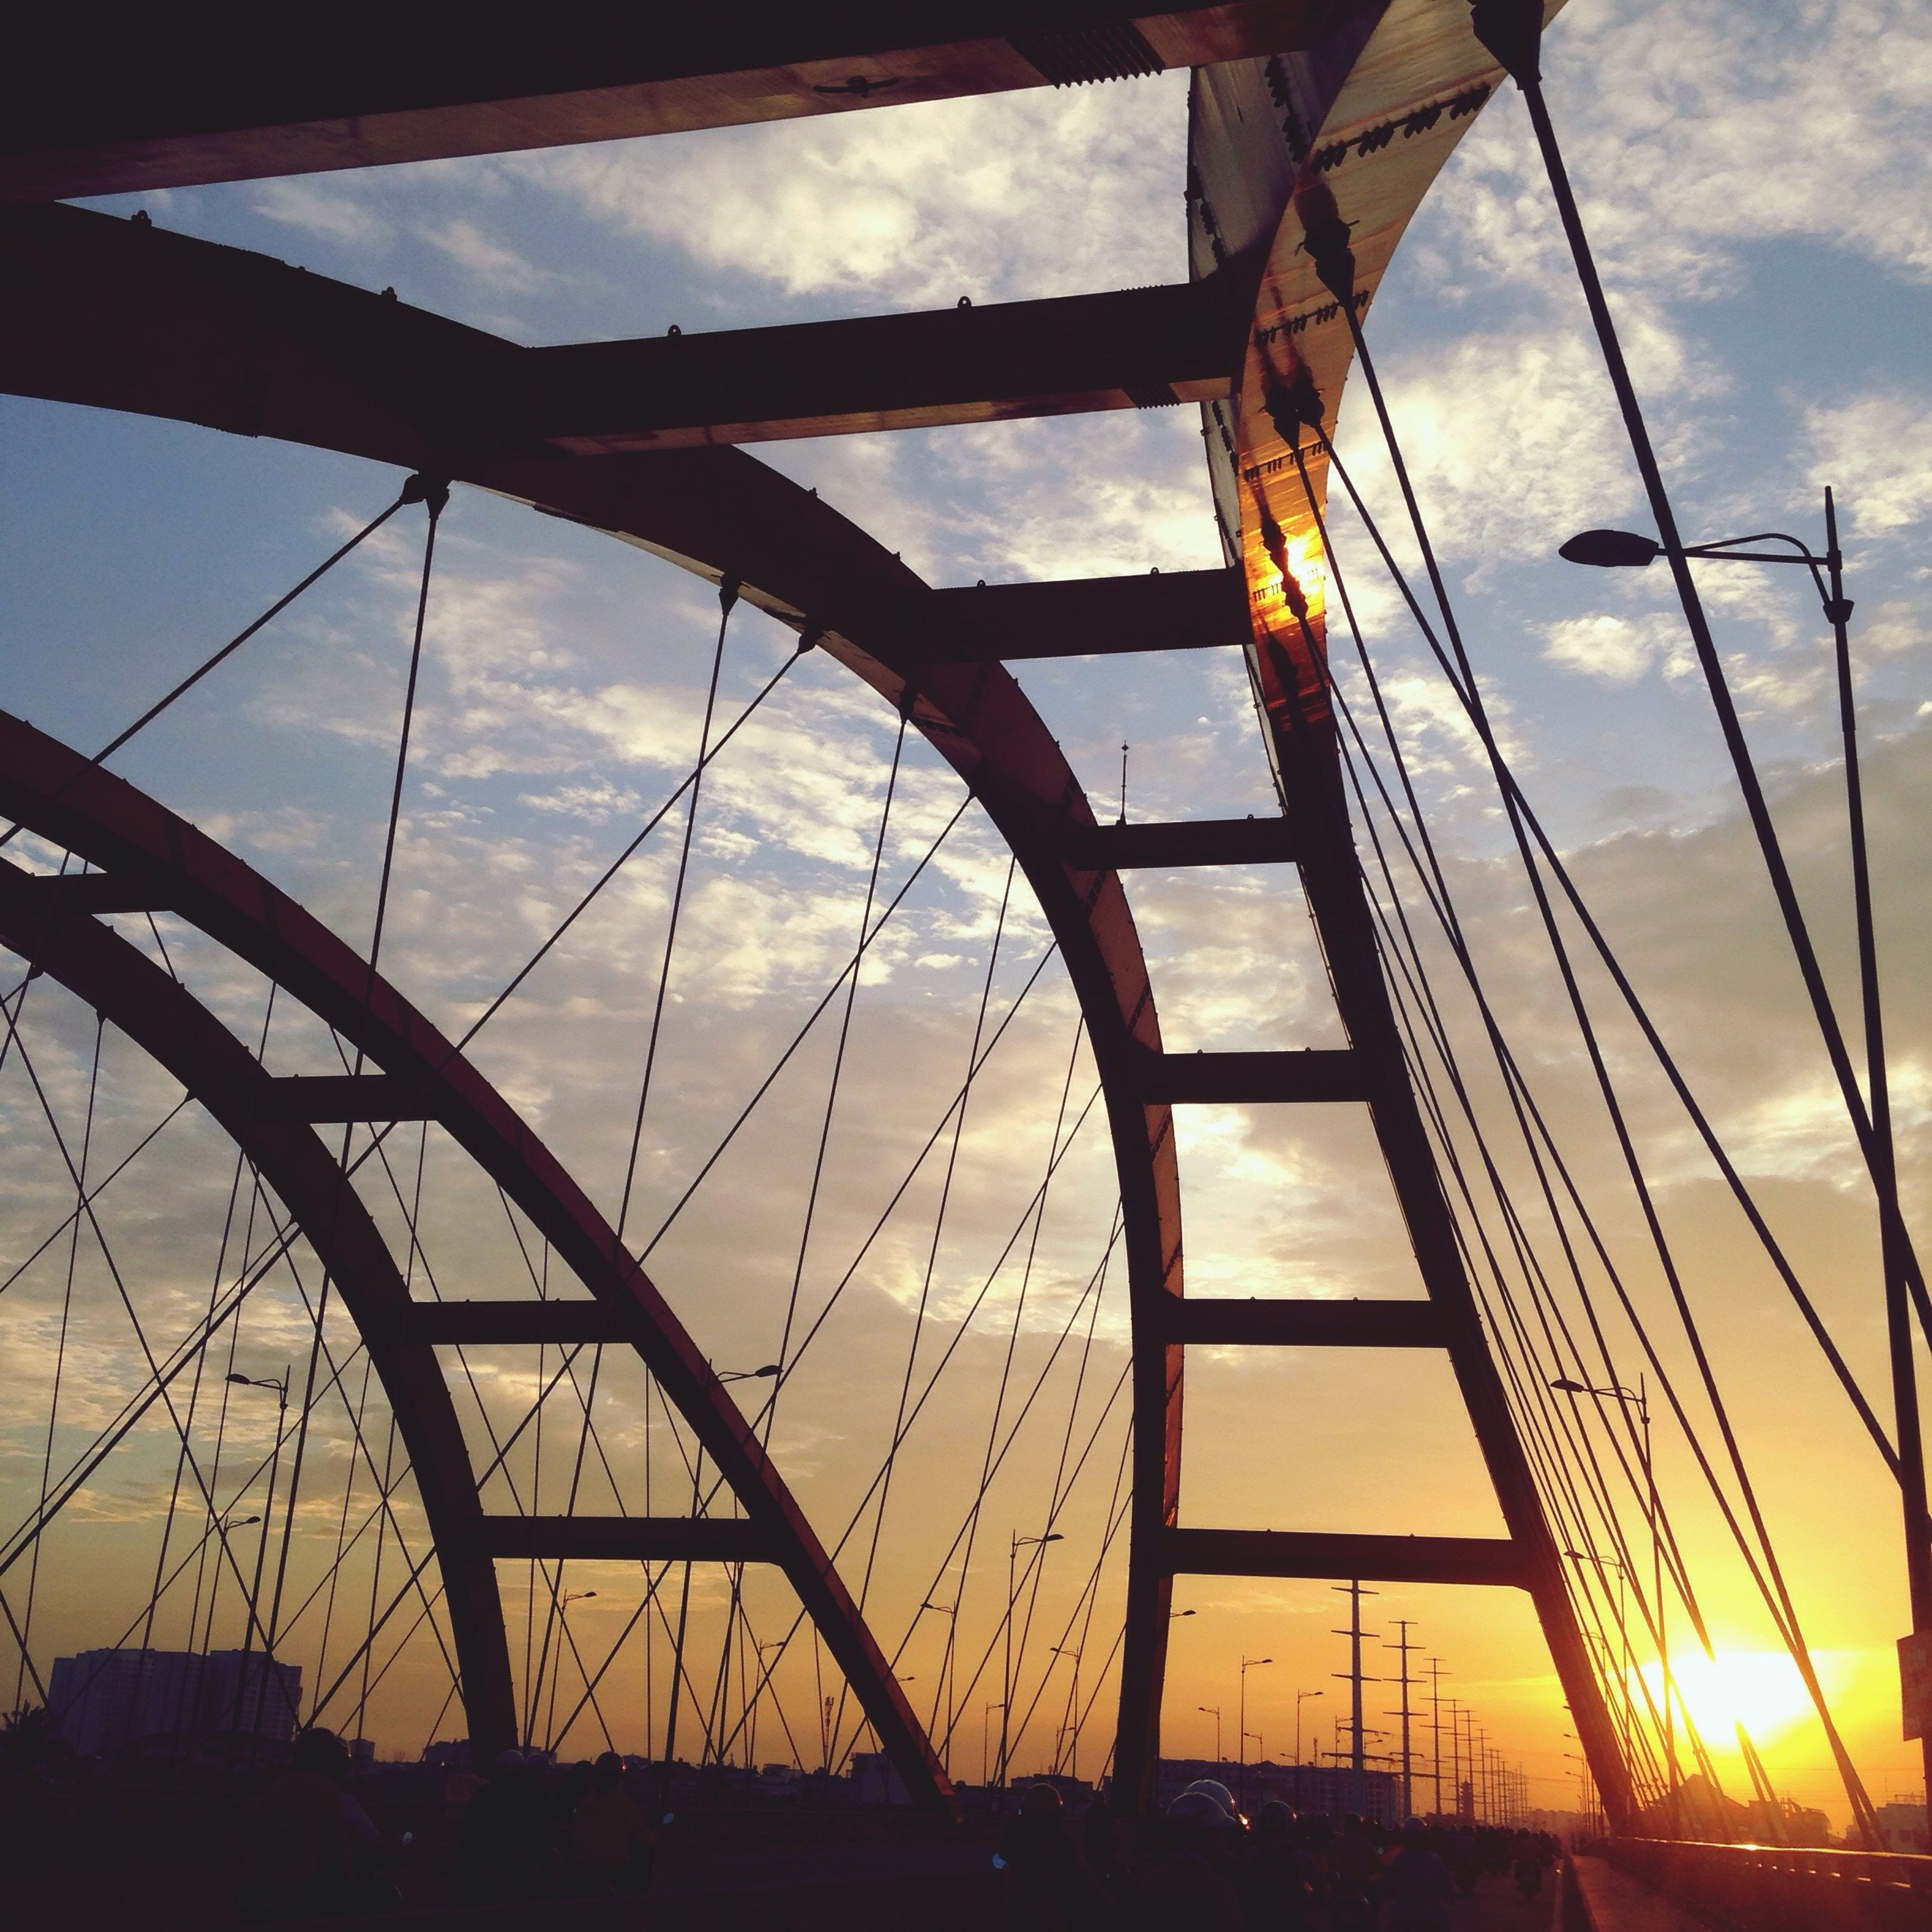 sky, cloud - sky, low angle view, outdoors, no people, sunset, ferris wheel, day, architecture, amusement park